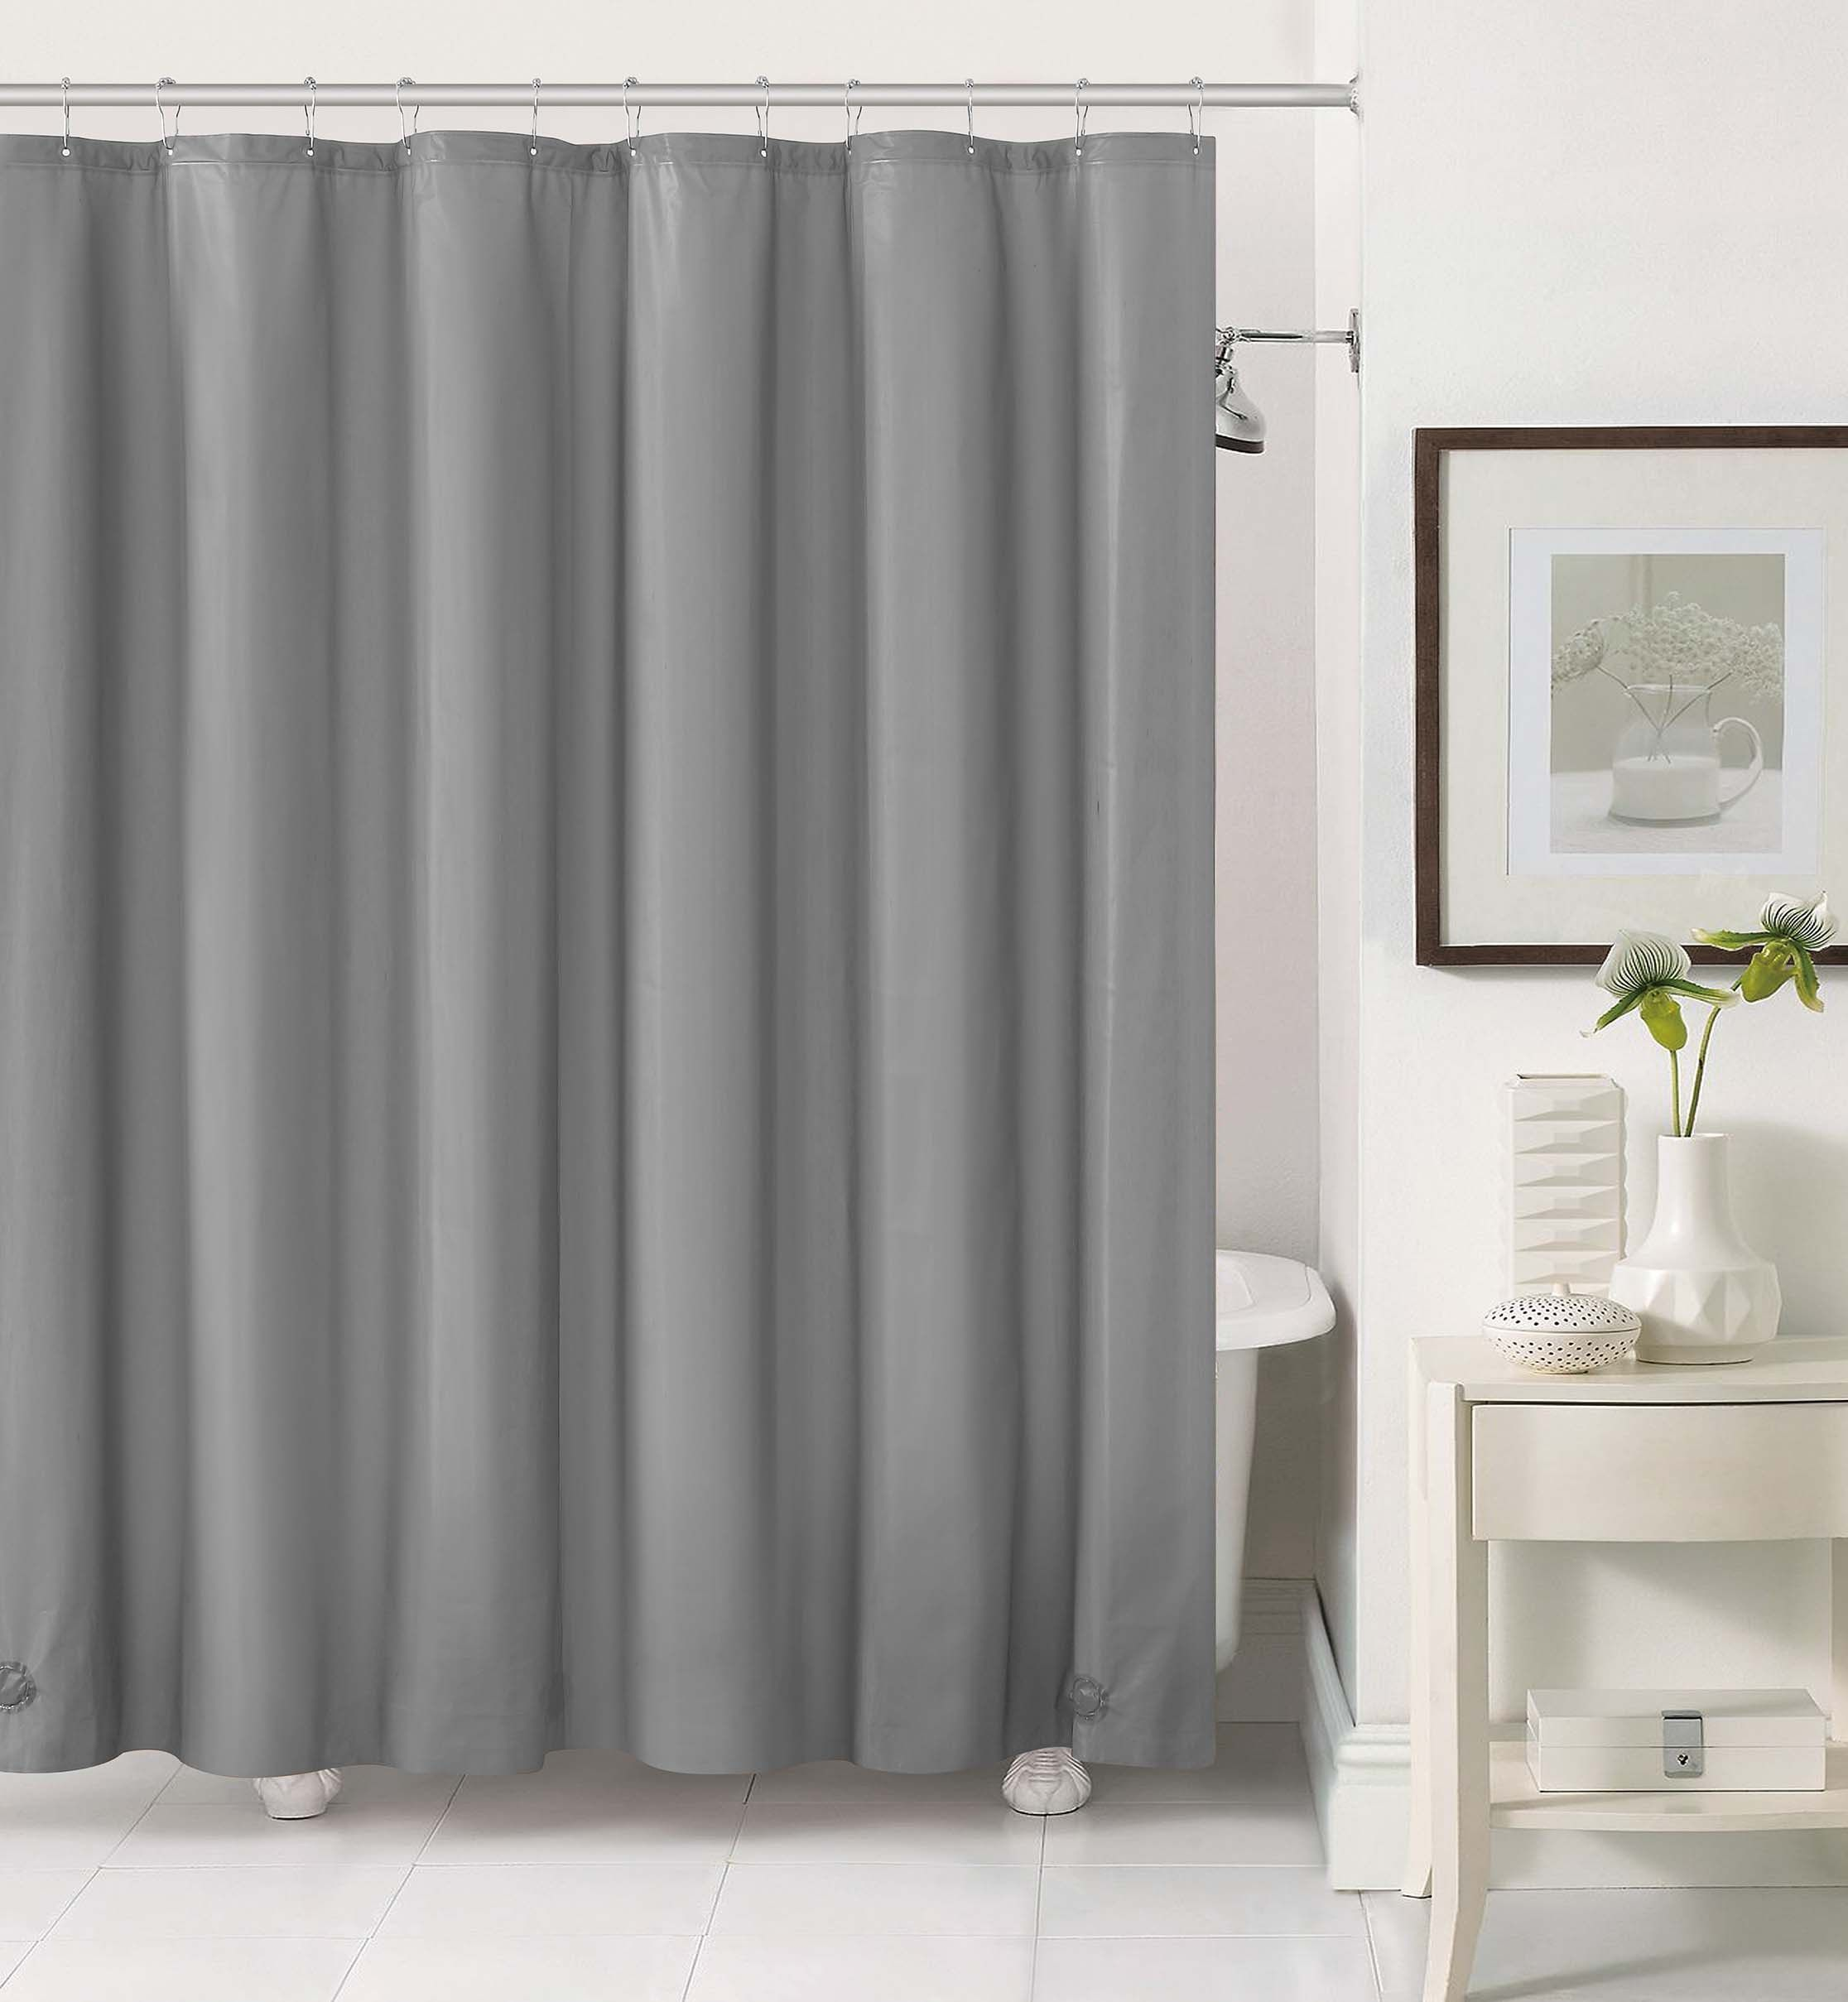 Royal Bath 2 In 1 Fabric Front Shower Curtain With Peva Non Toxic Liner Backing